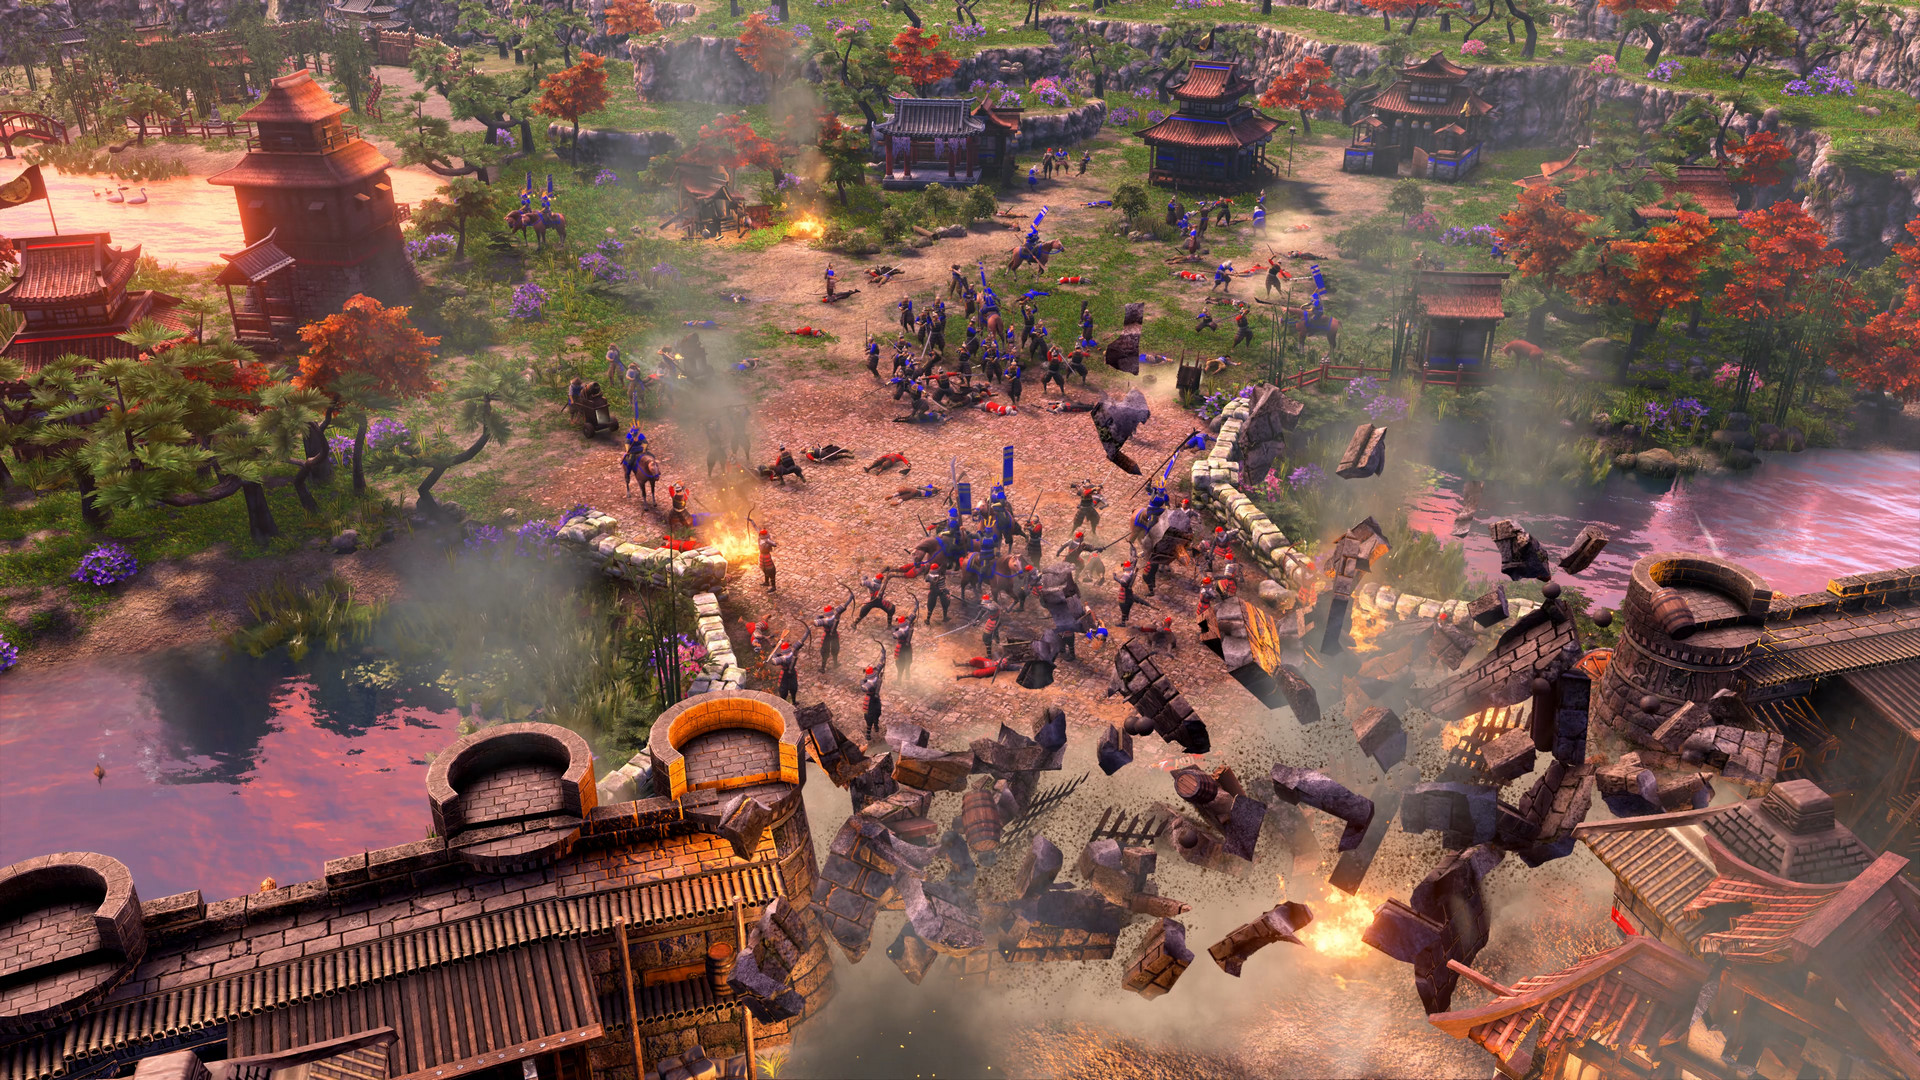 Age of Empires III: Definitive Edition — Is It Worth It?